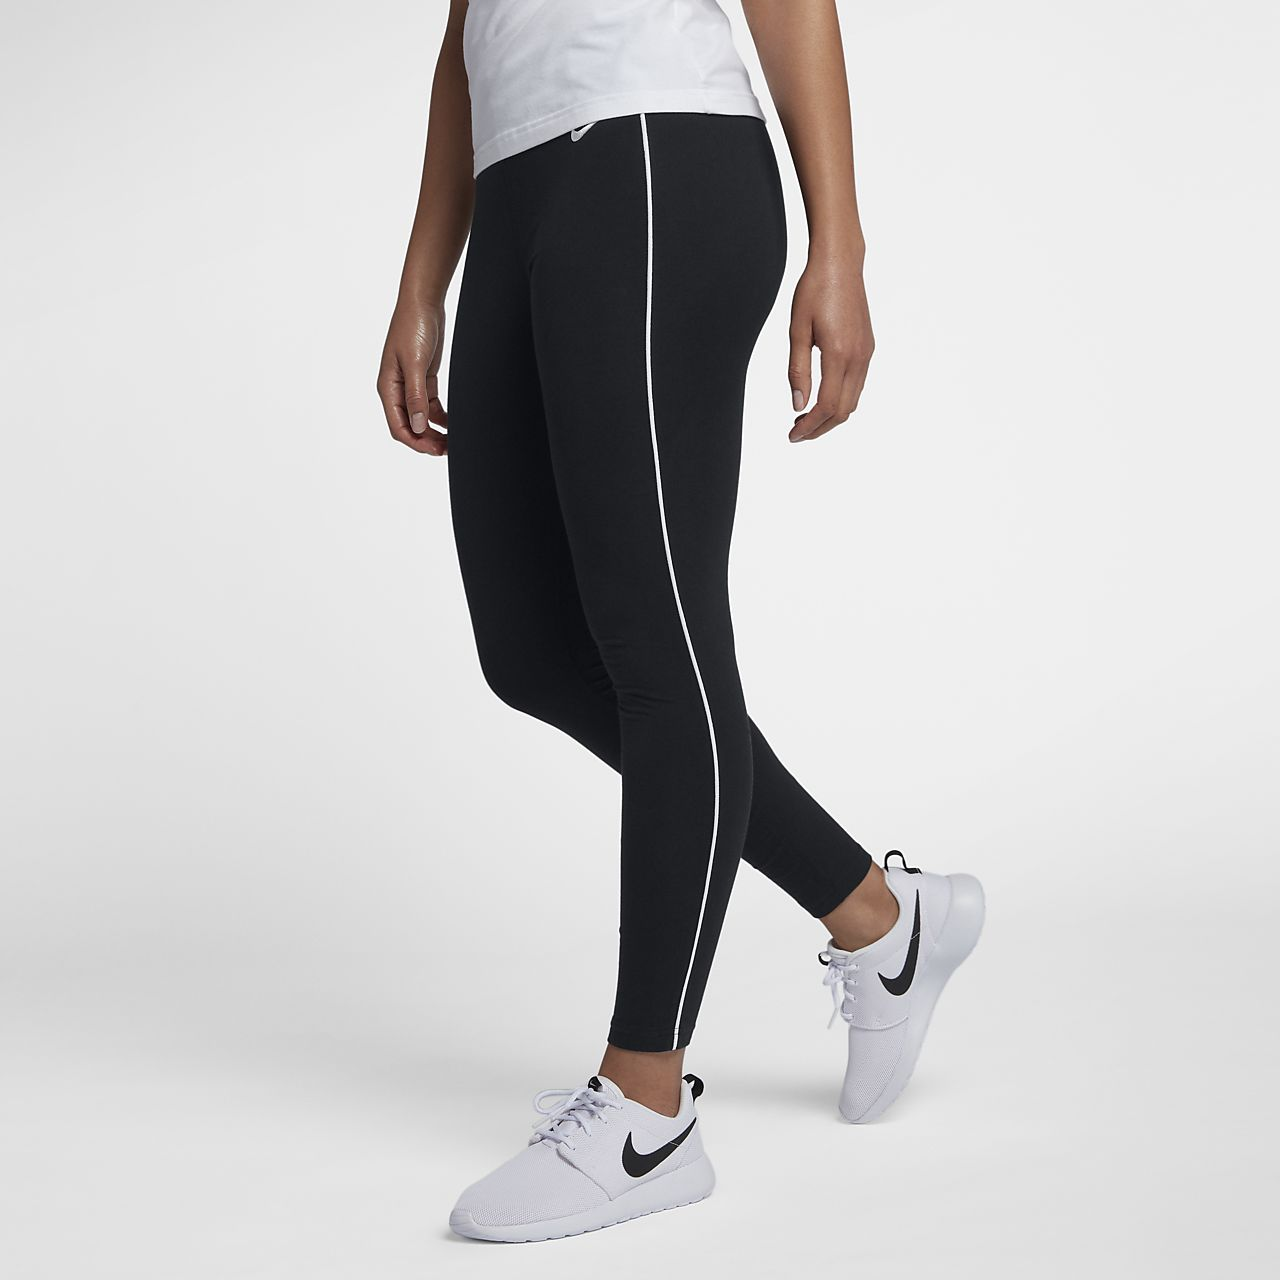 Nike Sportswear Women's Leggings